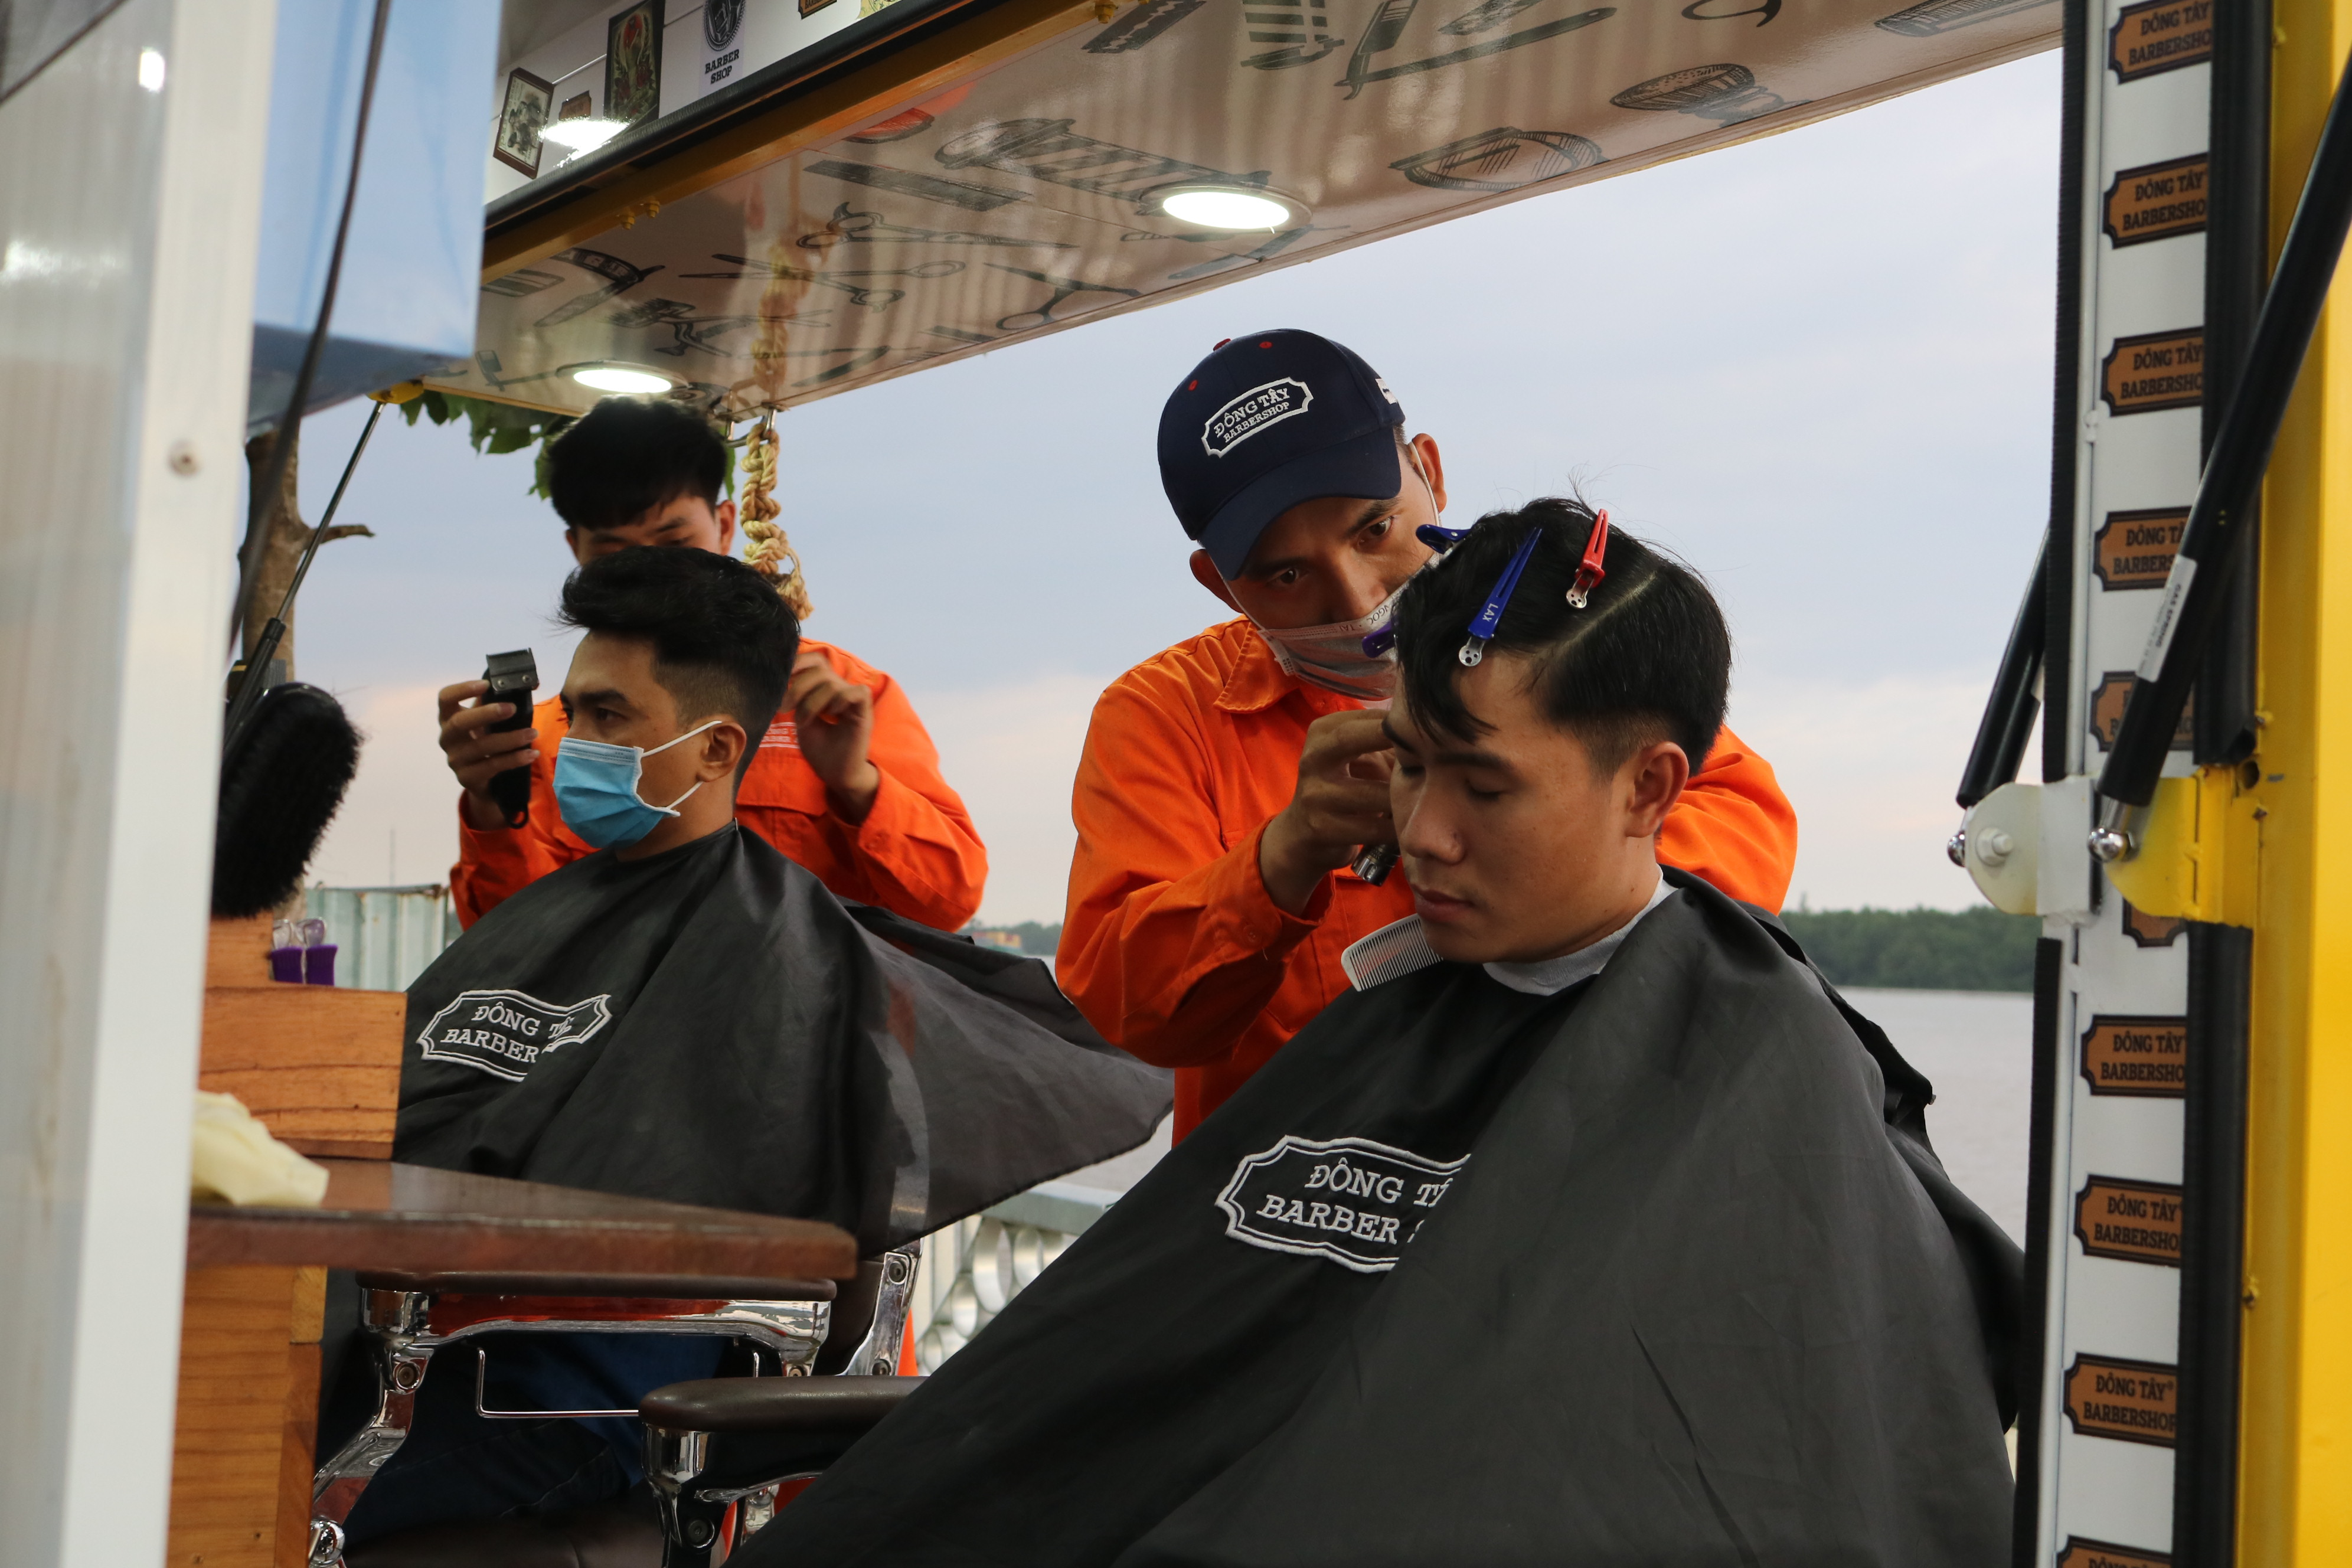 In the photo, barbers at Dong Tay mobile barbershop meticulously cut customer hair. Photo: Hoang An / Tuoi Tre